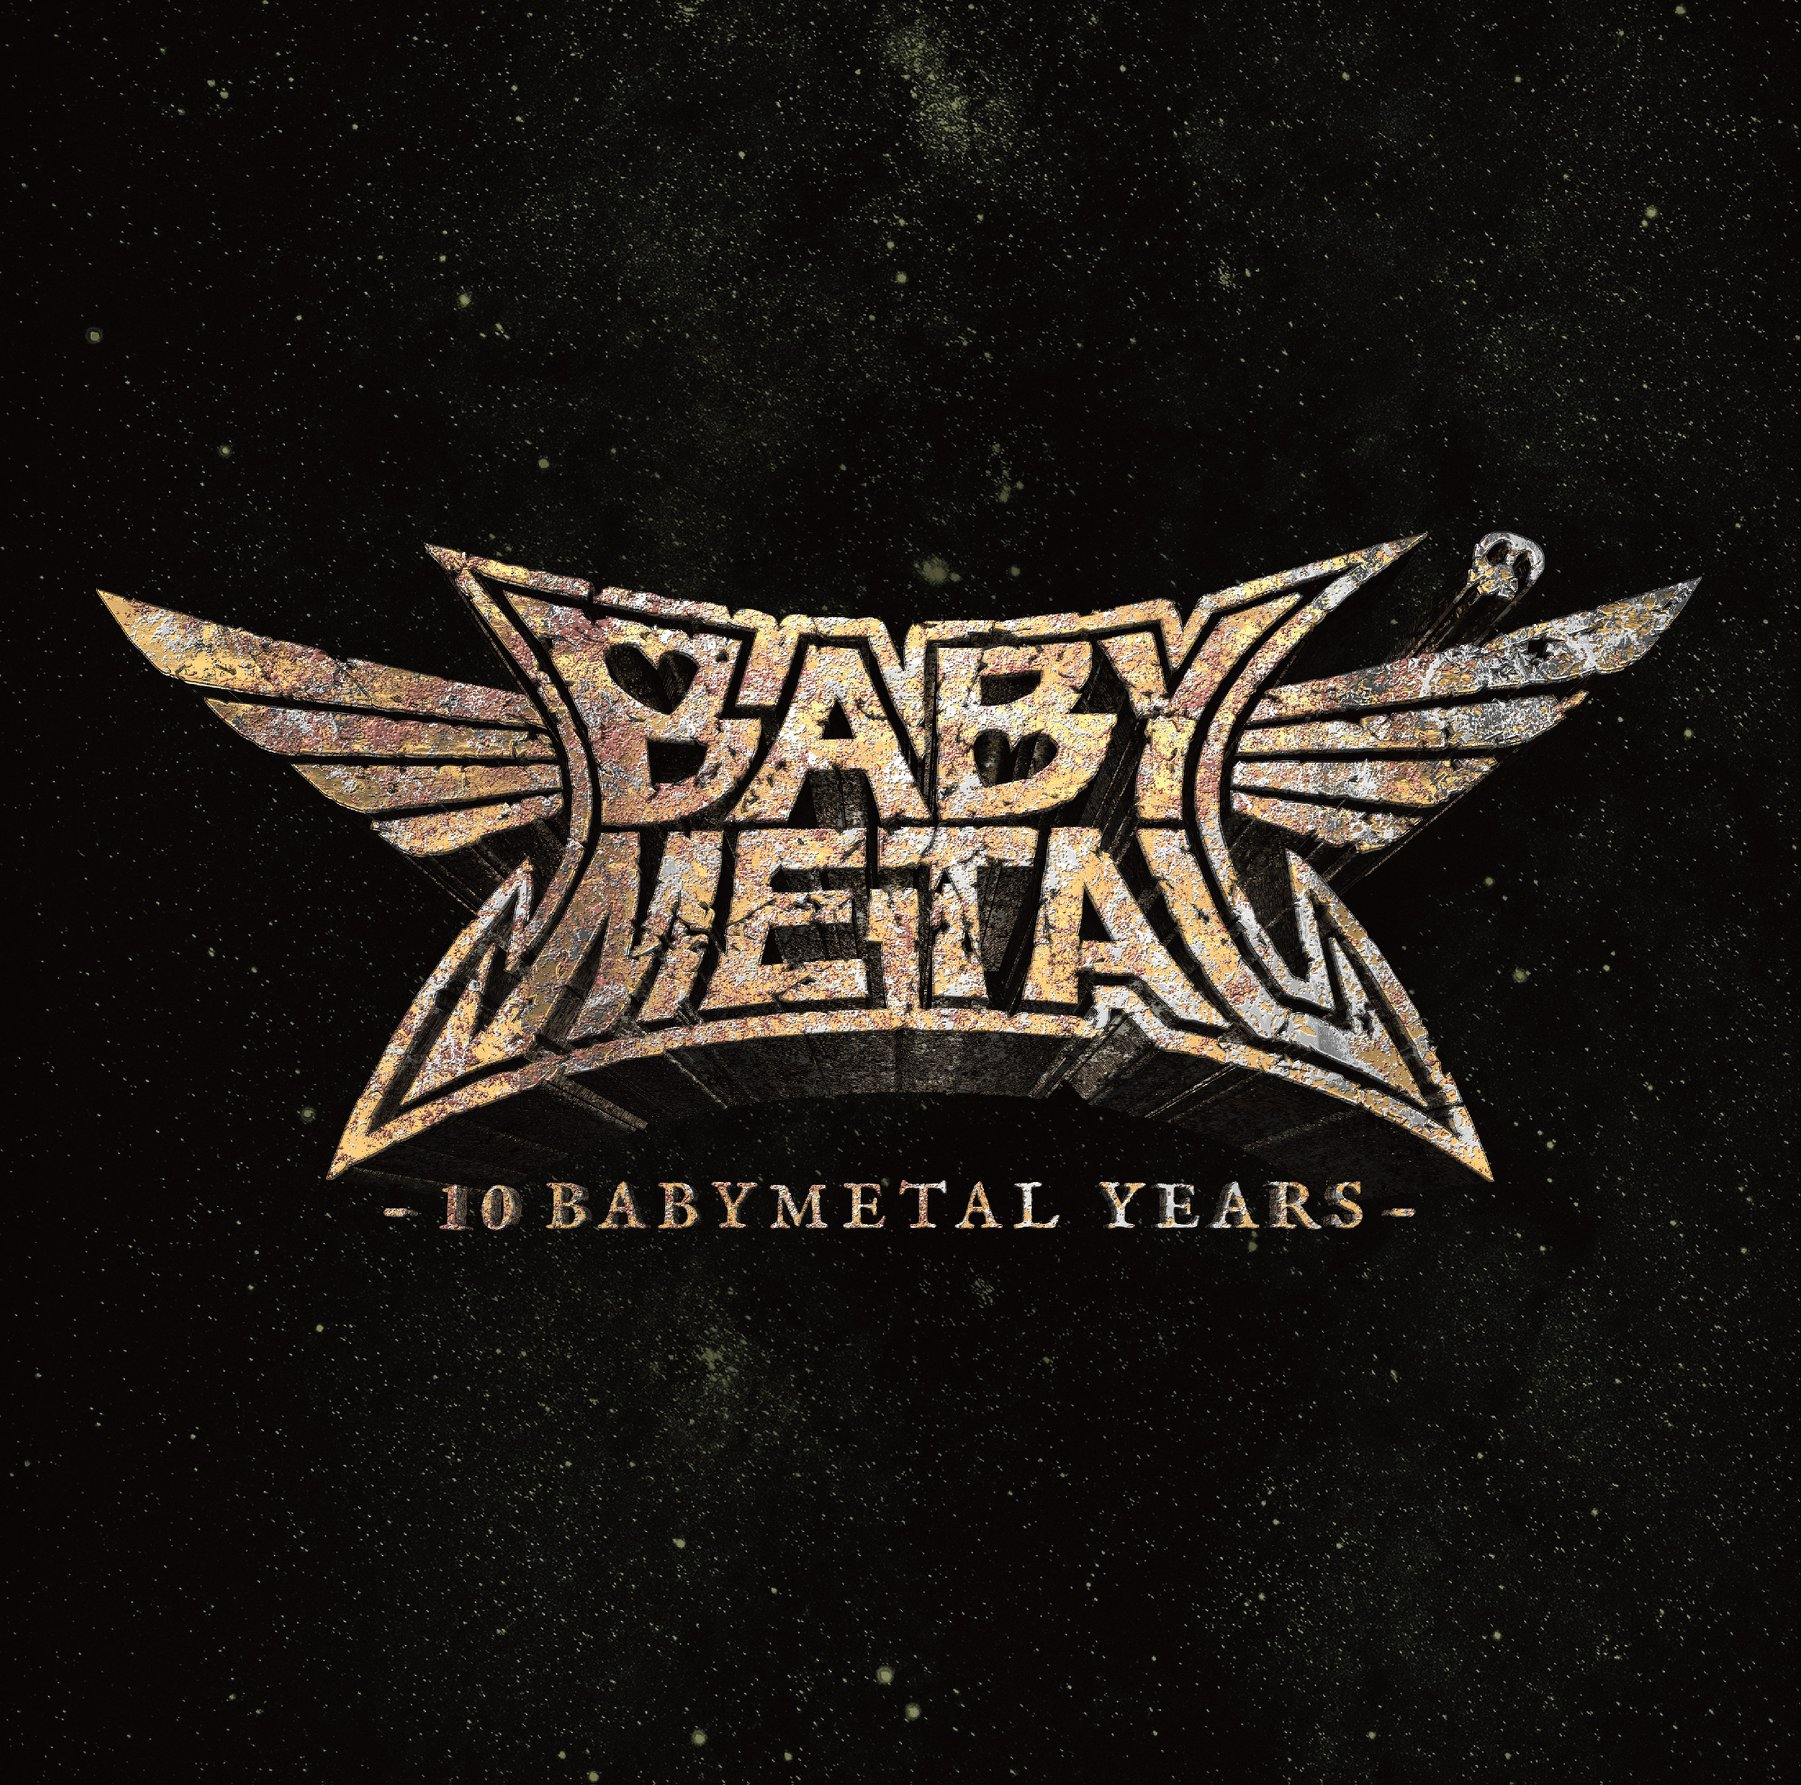 BabyMetal : 10 BABYMETAL Years - édition simple